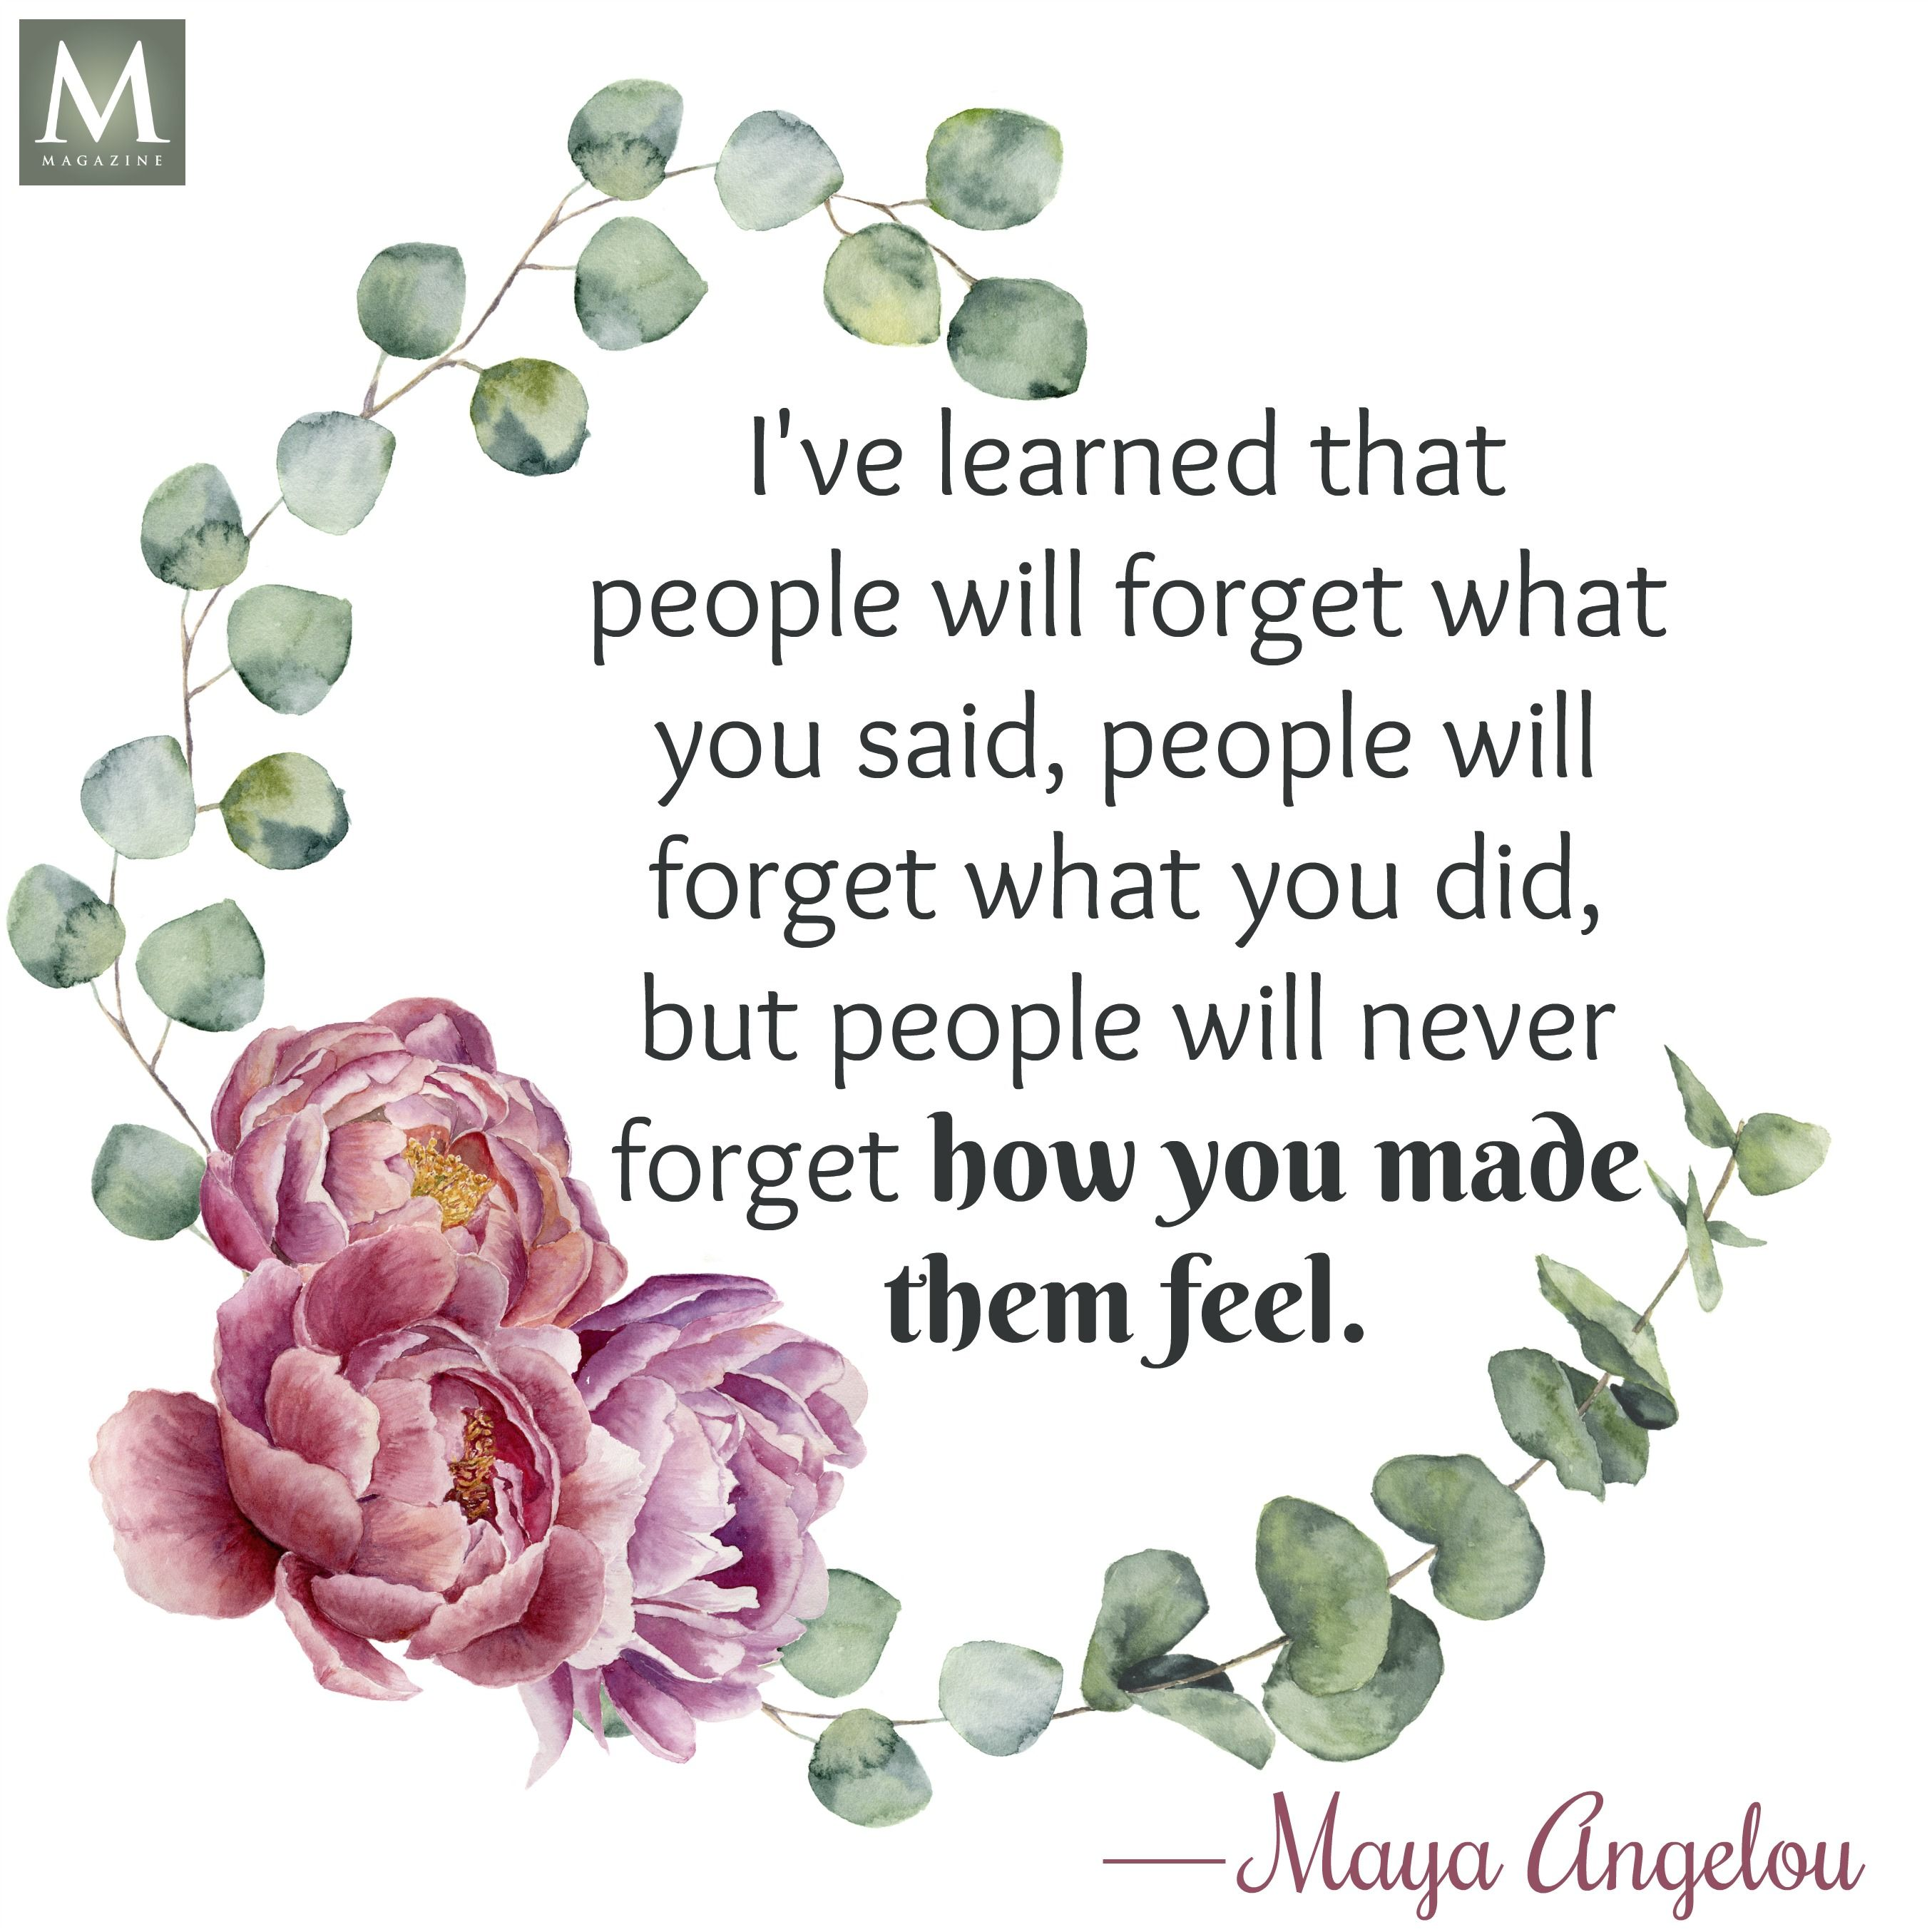 Ive learned that people will forget what you said people will ive learned that people will forget what you said people will forget what you did but people will never forget how you made them feel maya angelou kristyandbryce Images